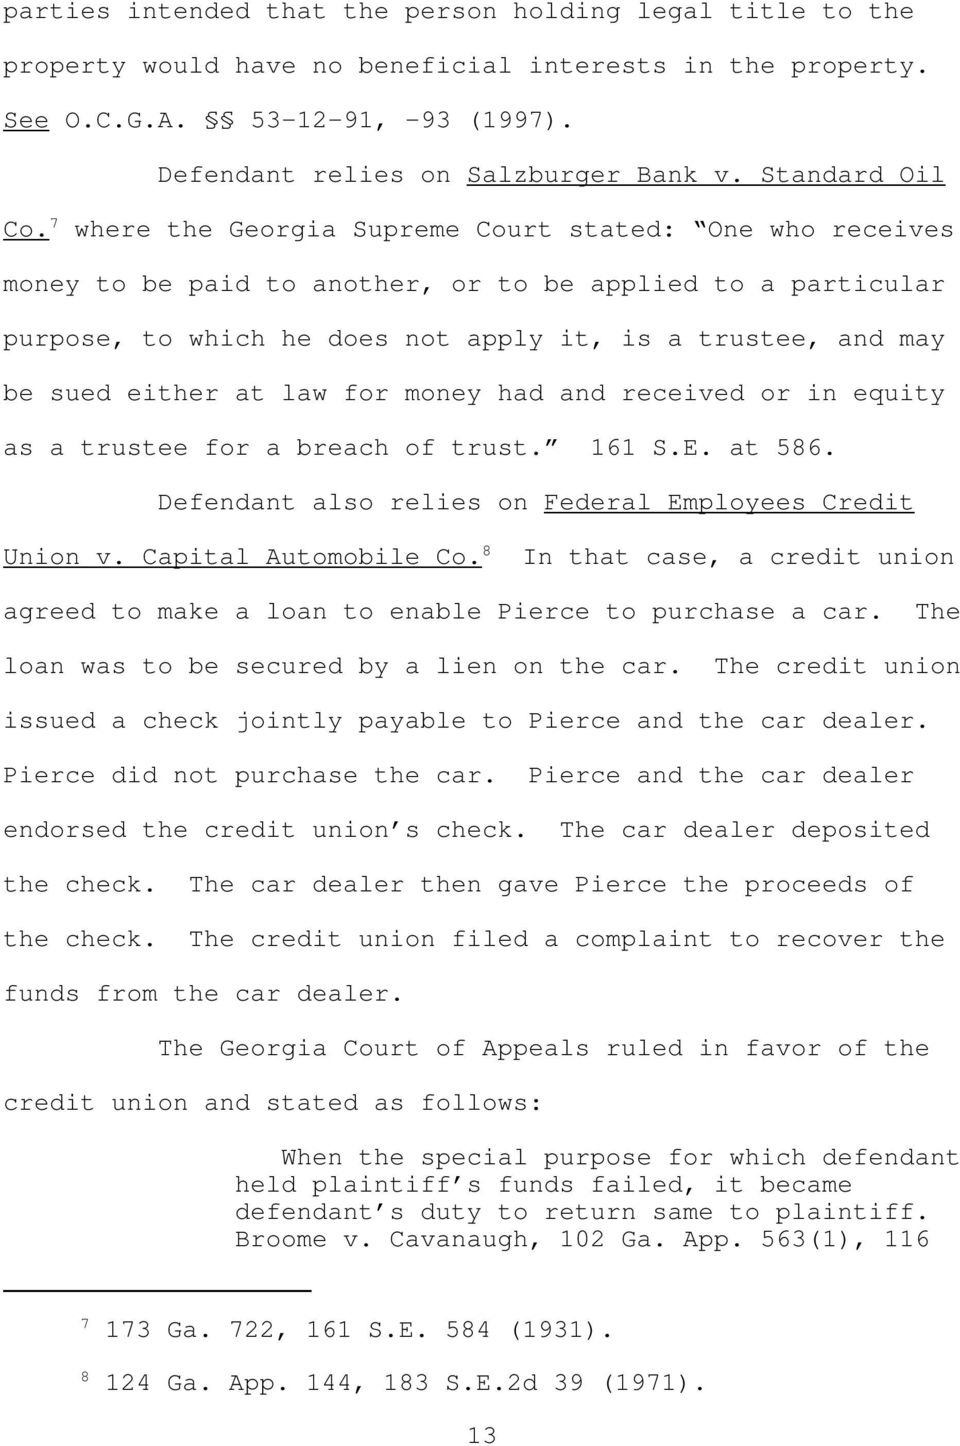 7 where the Georgia Supreme Court stated One who receives money to be paid to another, or to be applied to a particular purpose, to which he does not apply it, is a trustee, and may be sued either at